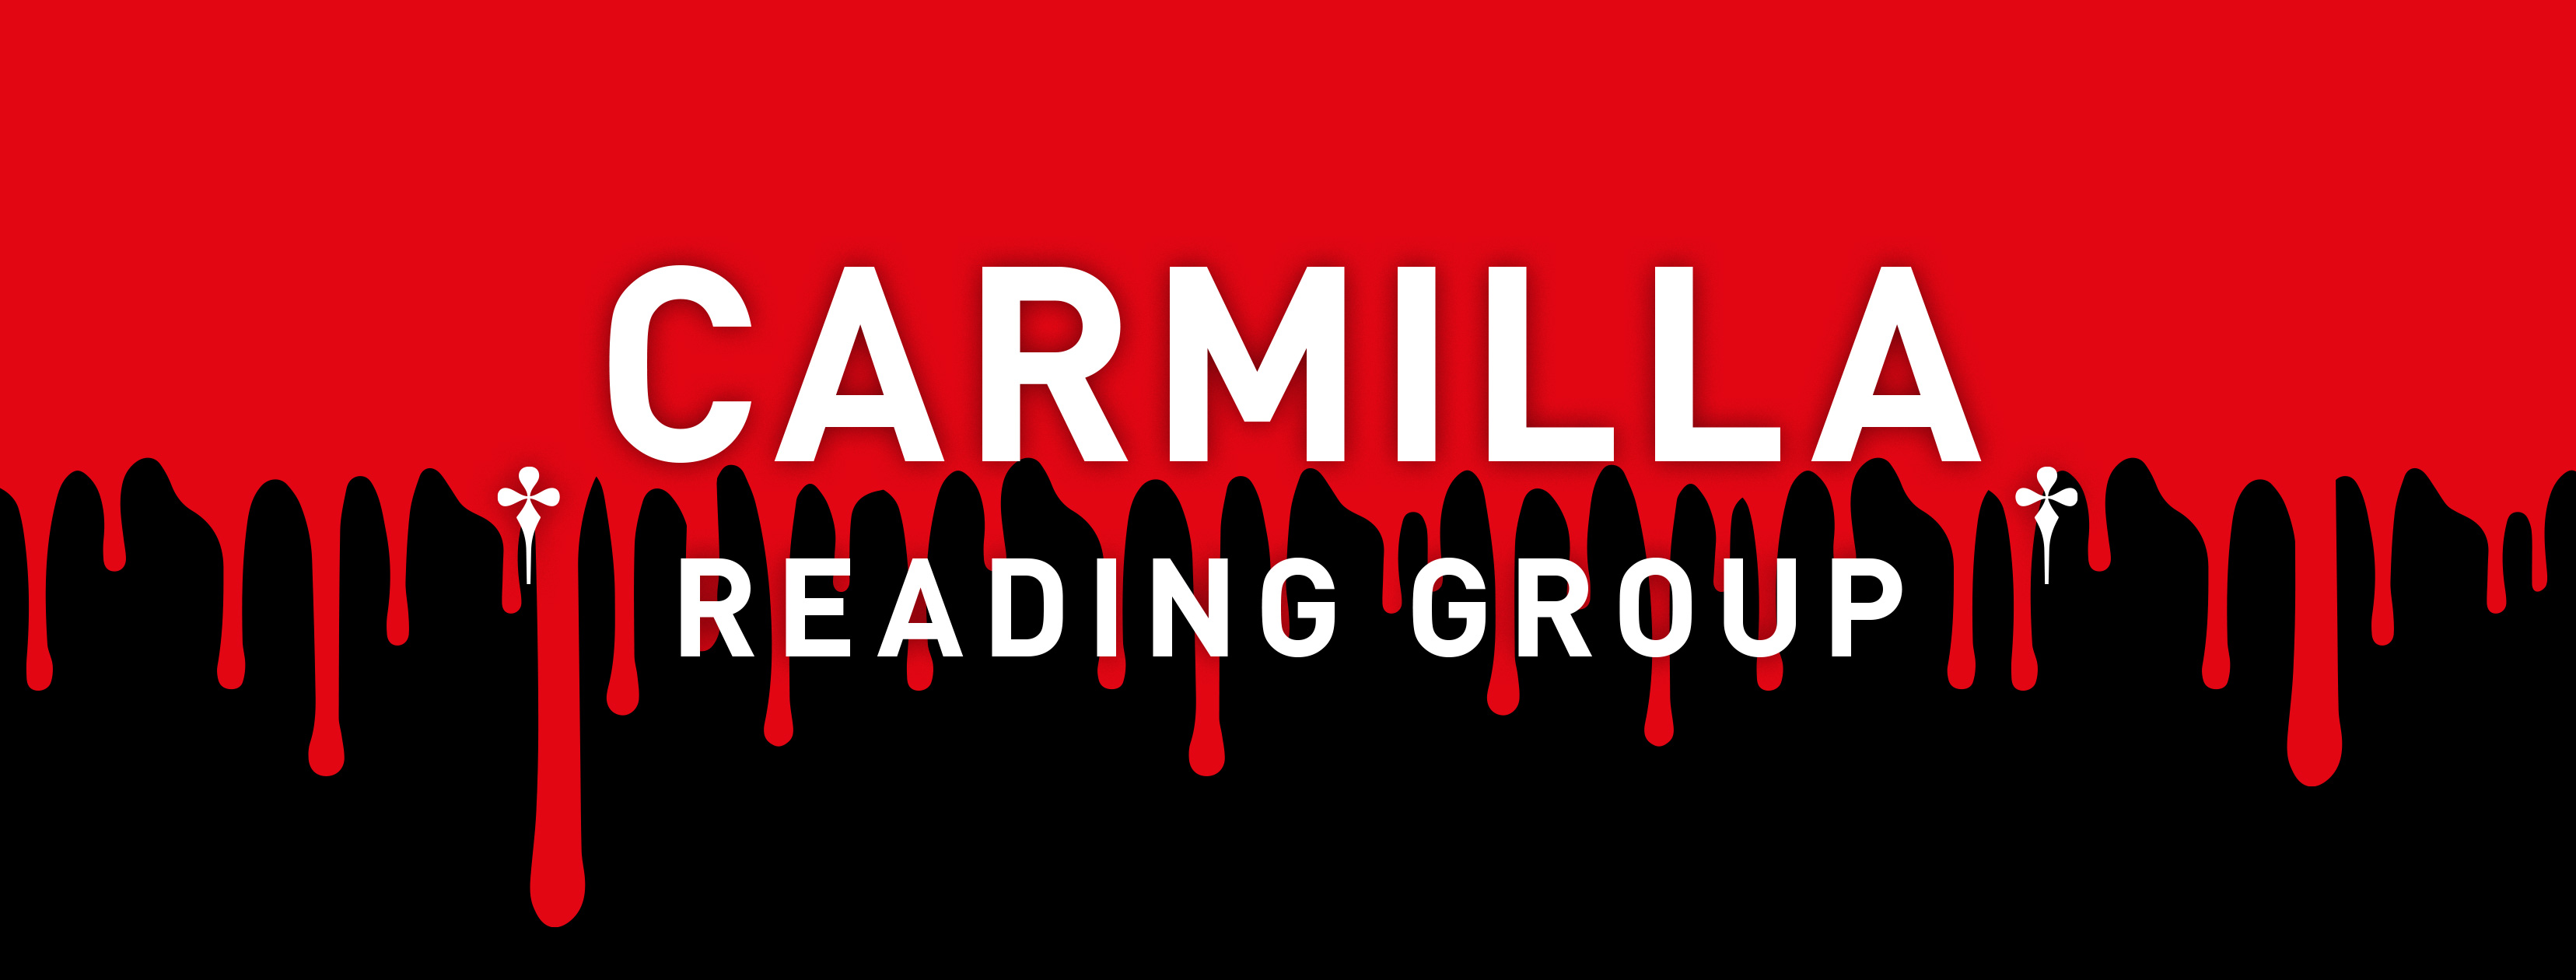 Carmilla // Reading Group, graphic design: (c) Andrea Lehsiak, 2020 © Carmilla // Reading Group, graphic design: Andrea Lehsiak, 2020